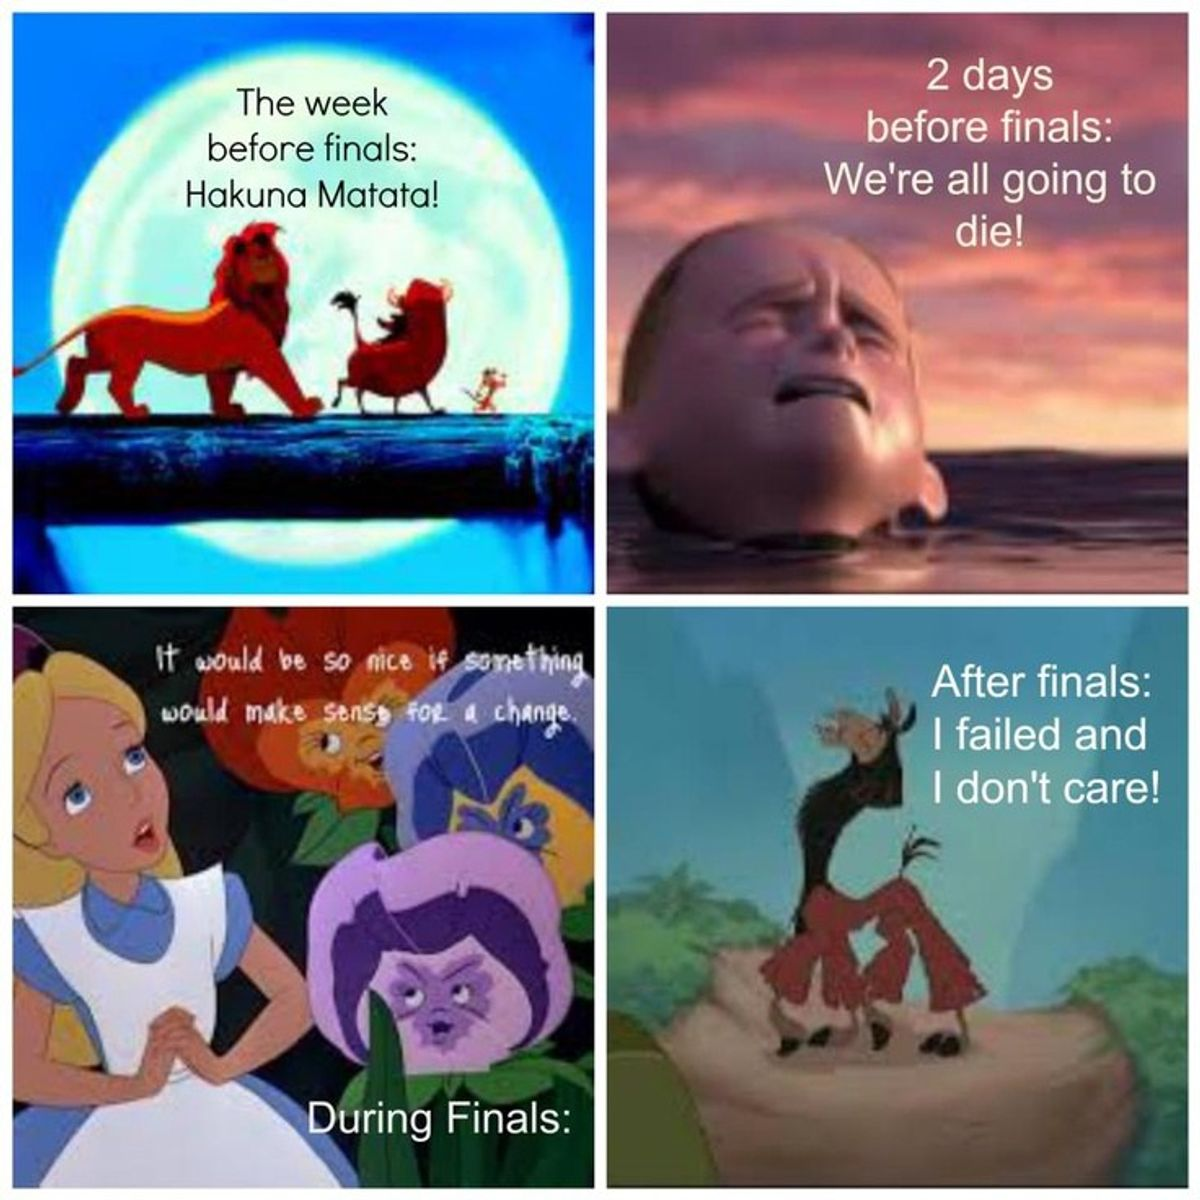 5 Things to Remember During Finals Week As Told By Disney Characters